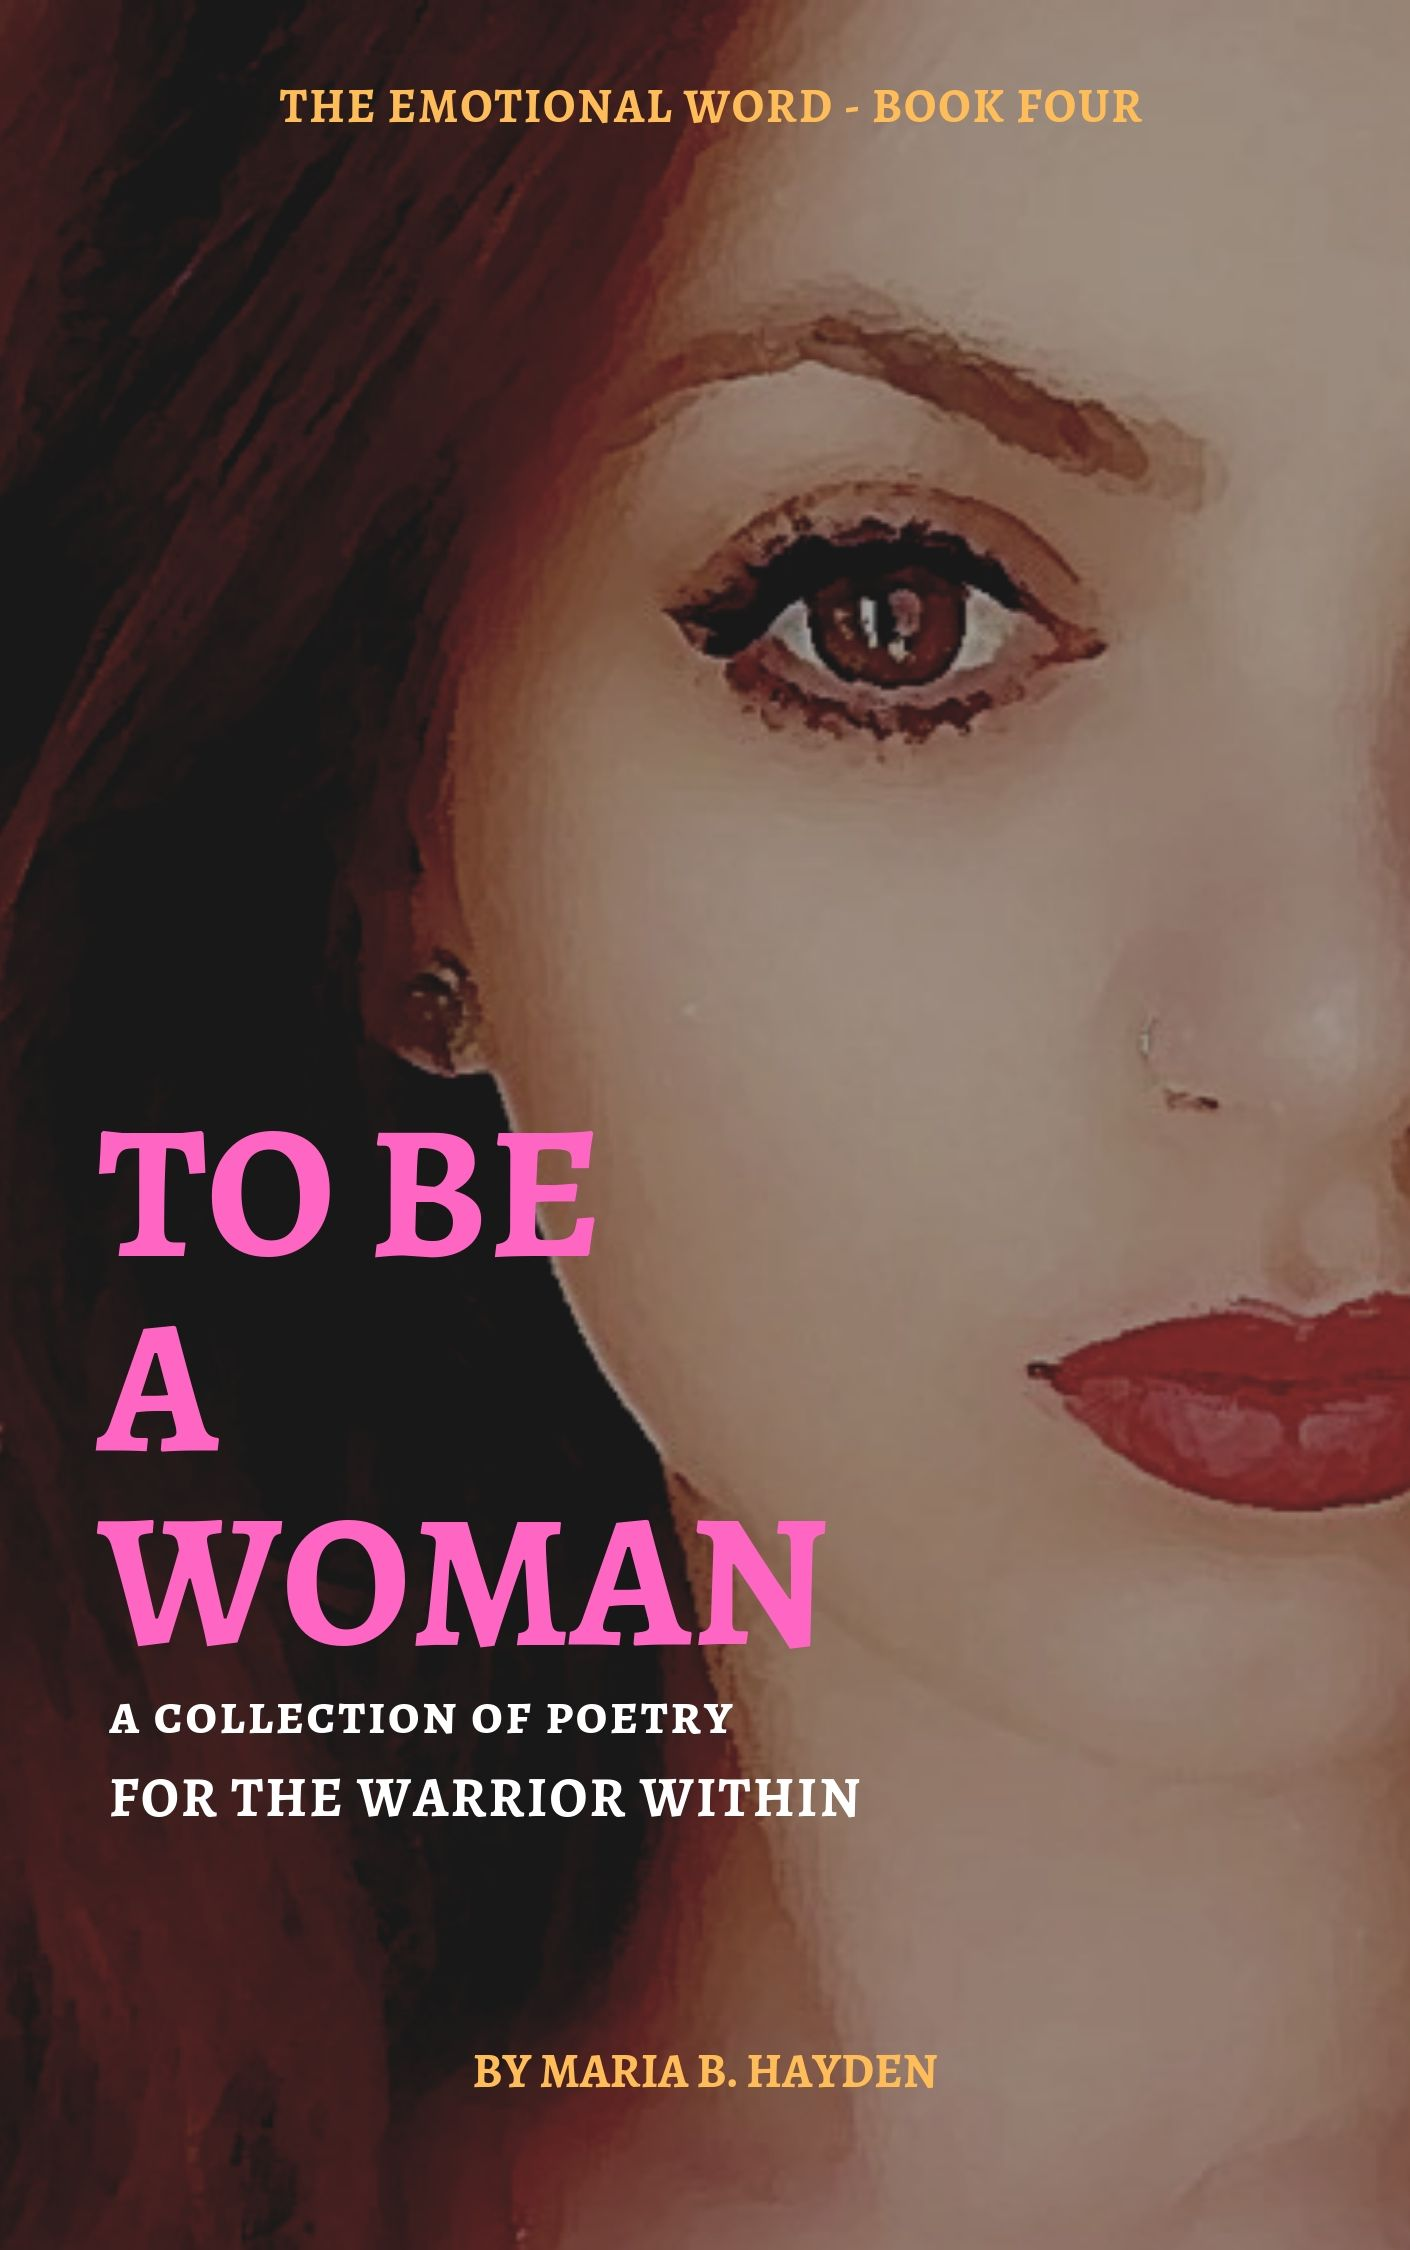 To be a woman book cover